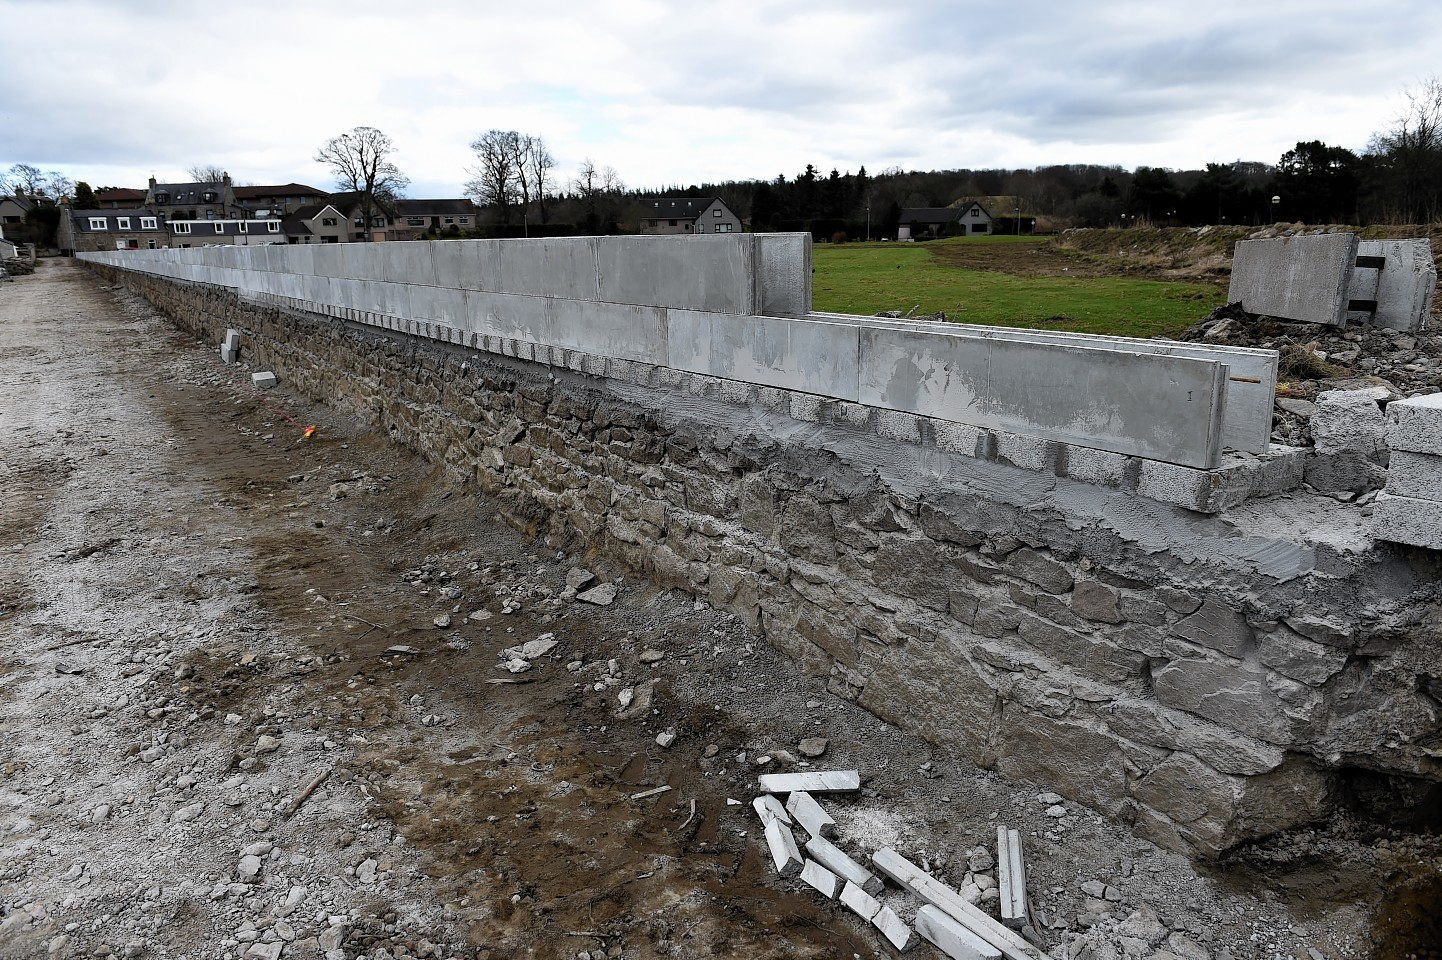 The firm is building a flood defence behind their business to help protect against future flooding.